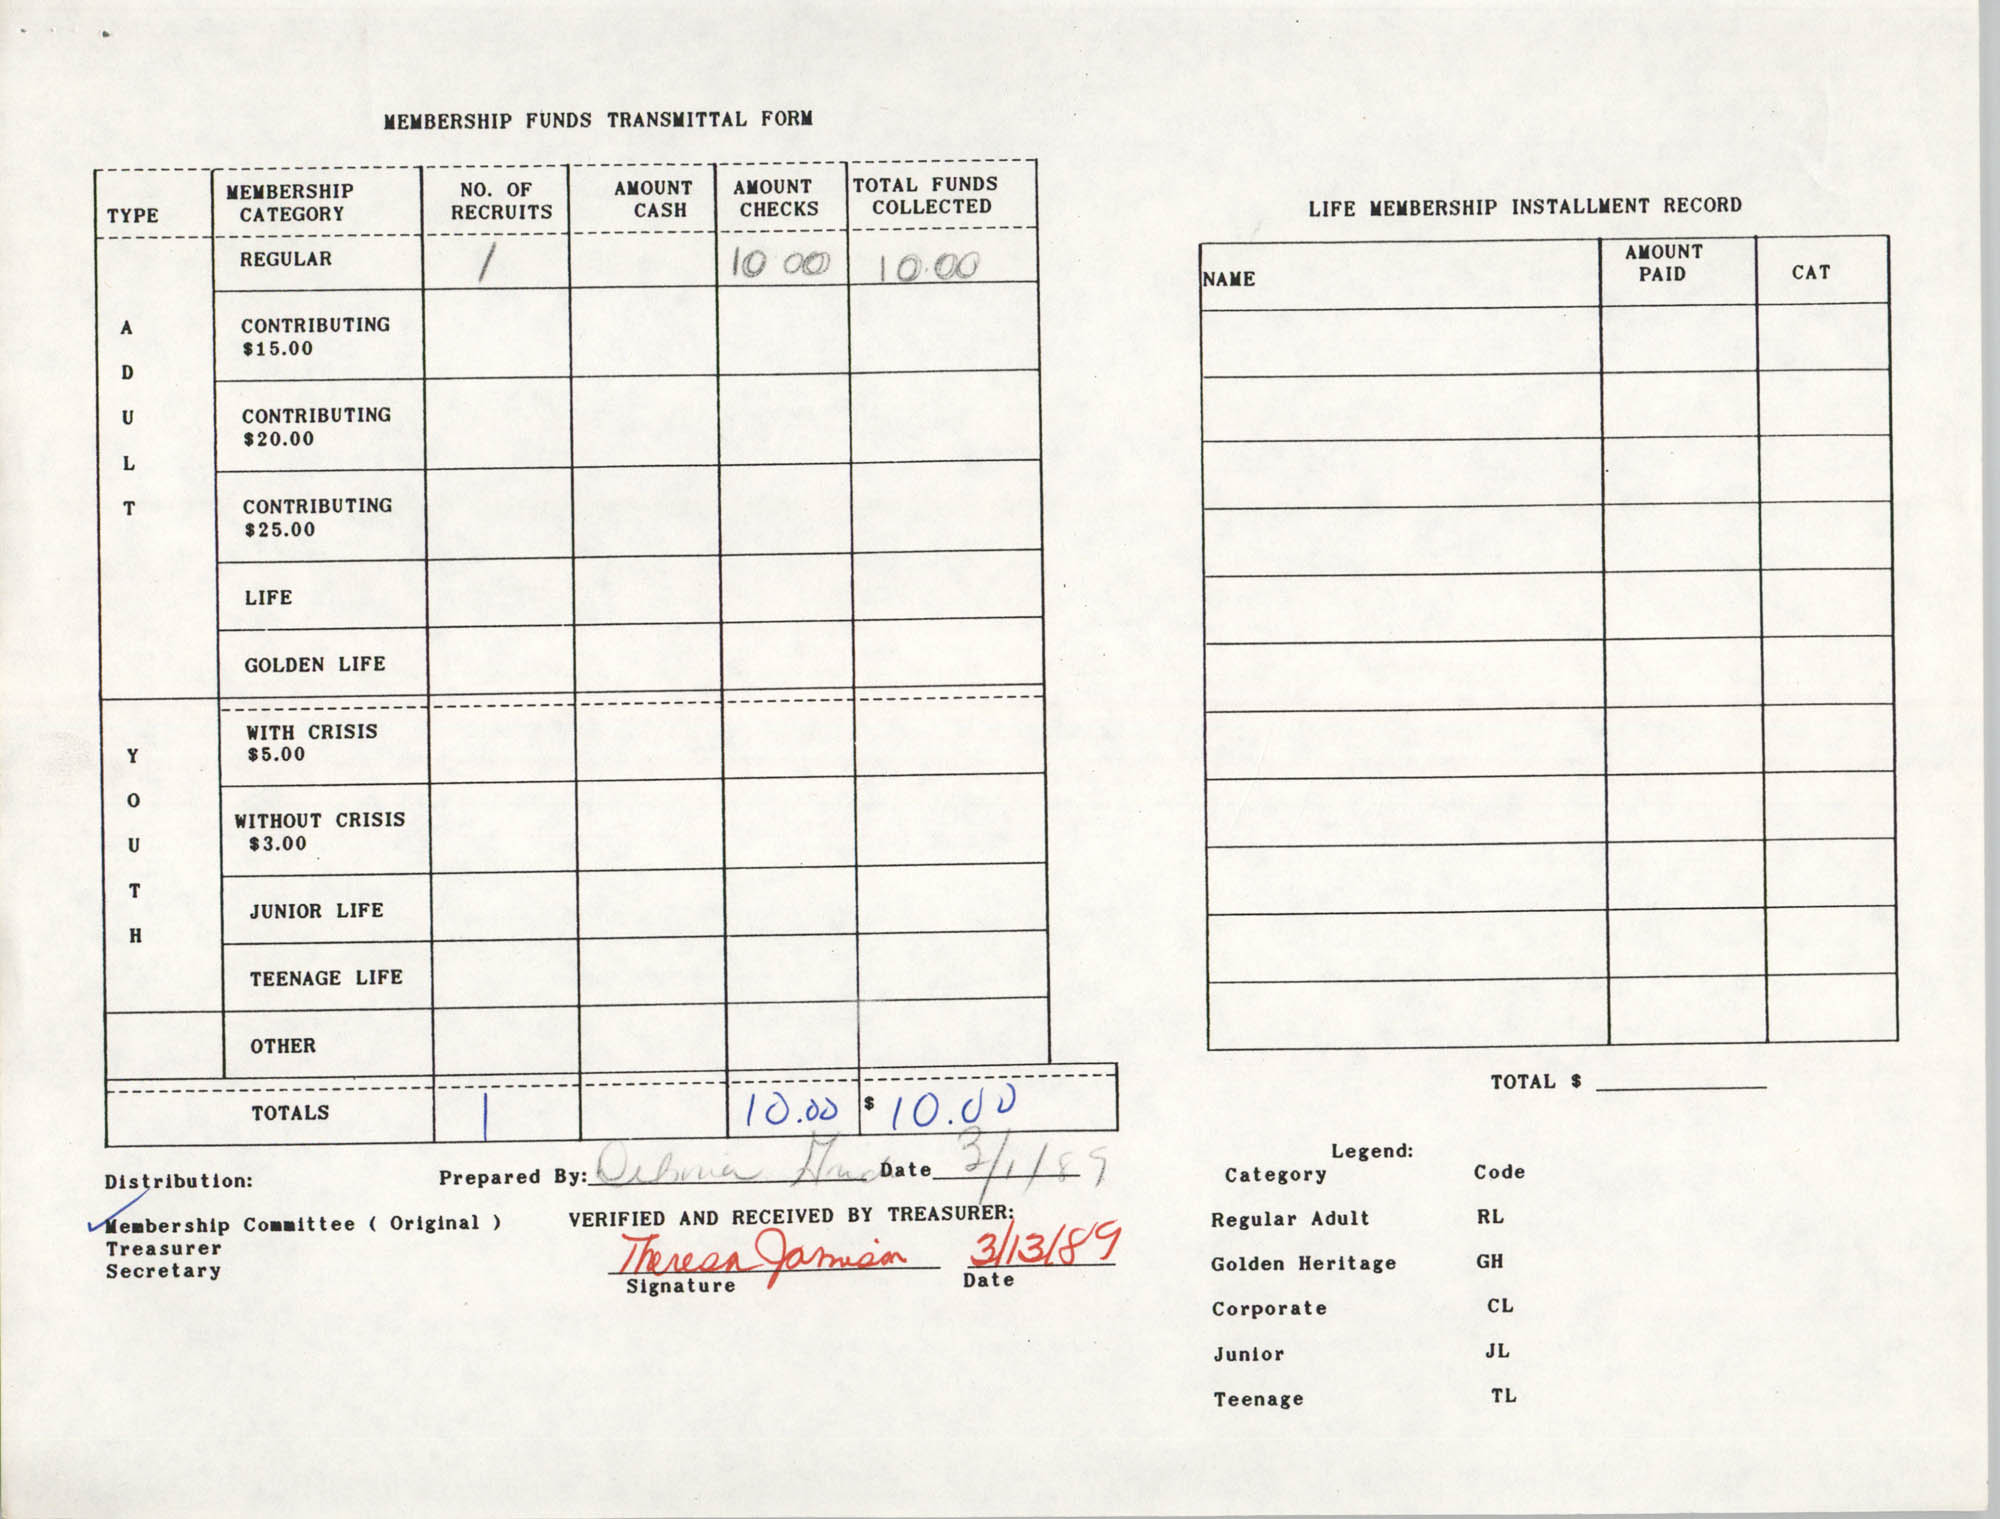 Charleston Branch of the NAACP Funds Transmittal Forms, March 1989, Page 1